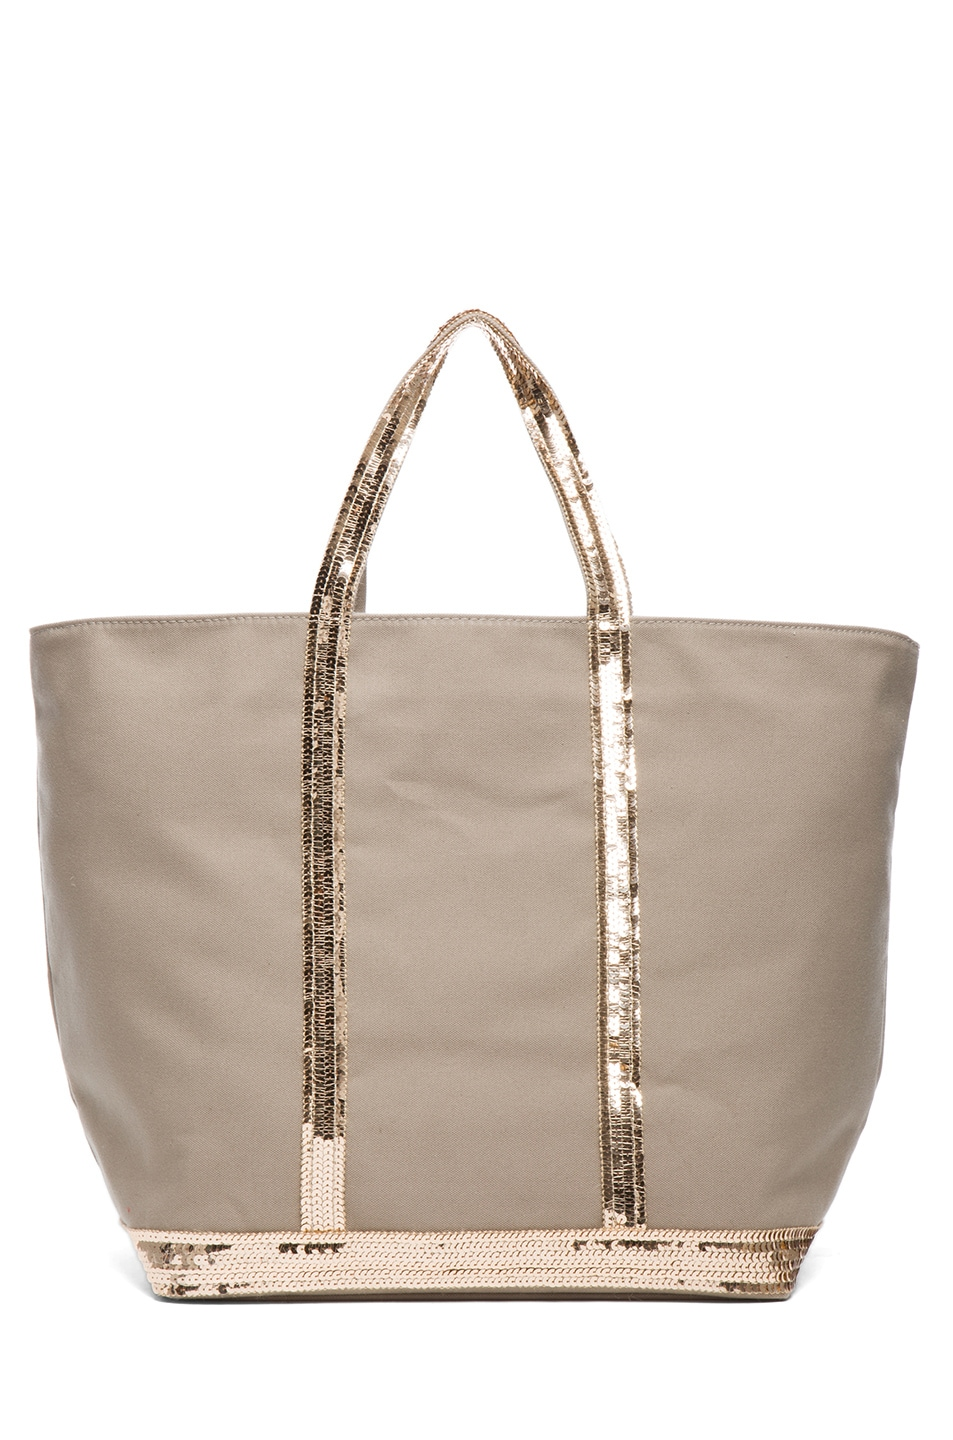 Image 2 of Vanessa Bruno Toile De Coton Tote in Savane